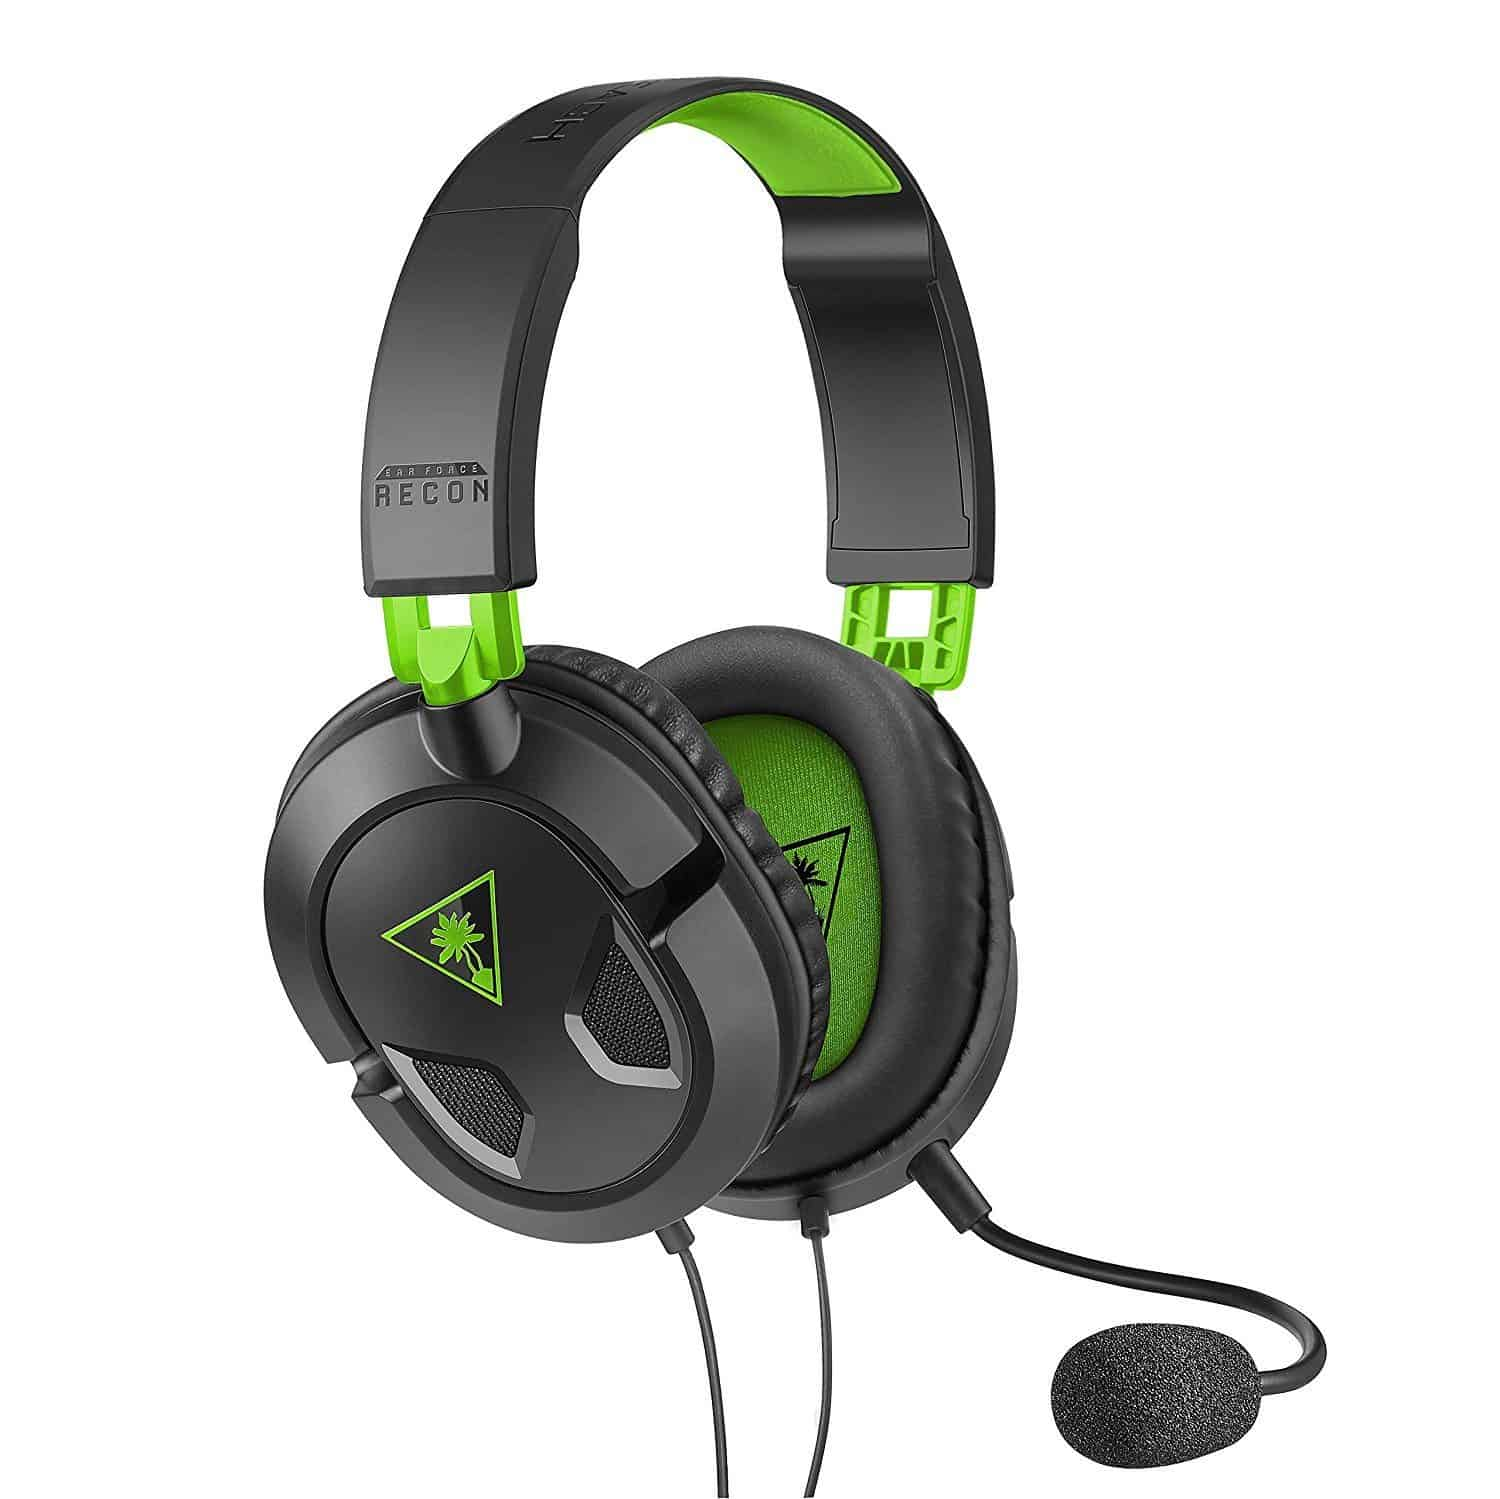 bbe334ed64a Best PS4 Headset Under £50 2018 - Buying Guide Review (UK)